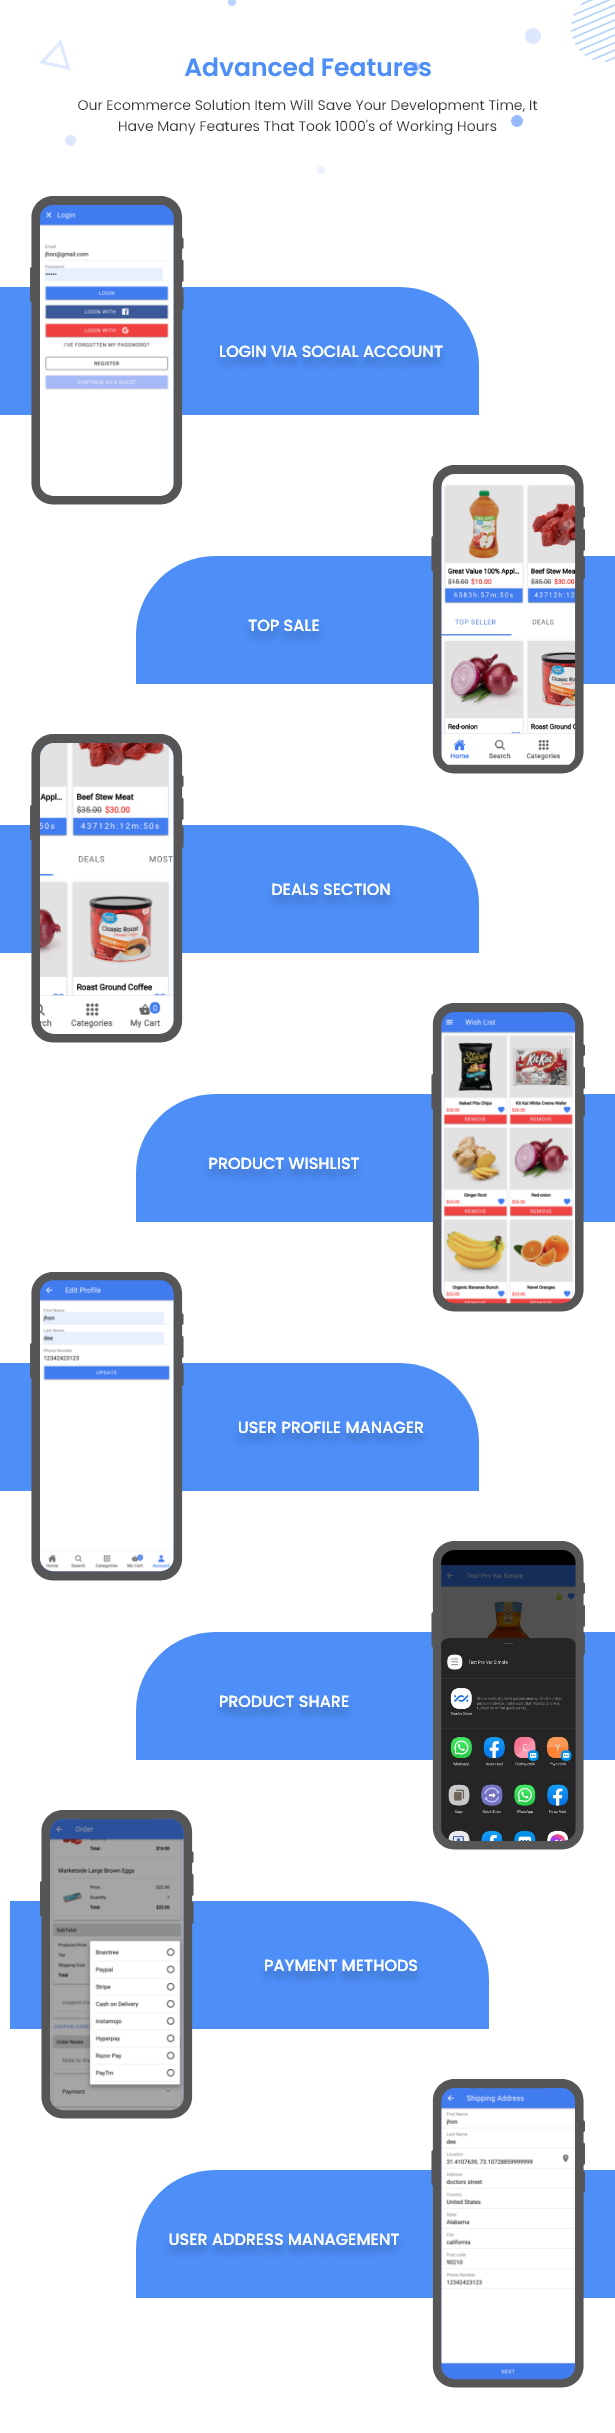 Best Ecommerce Solution with Delivery App For Grocery, Food, Pharmacy, Any Stores / Laravel + IONIC5 - 42